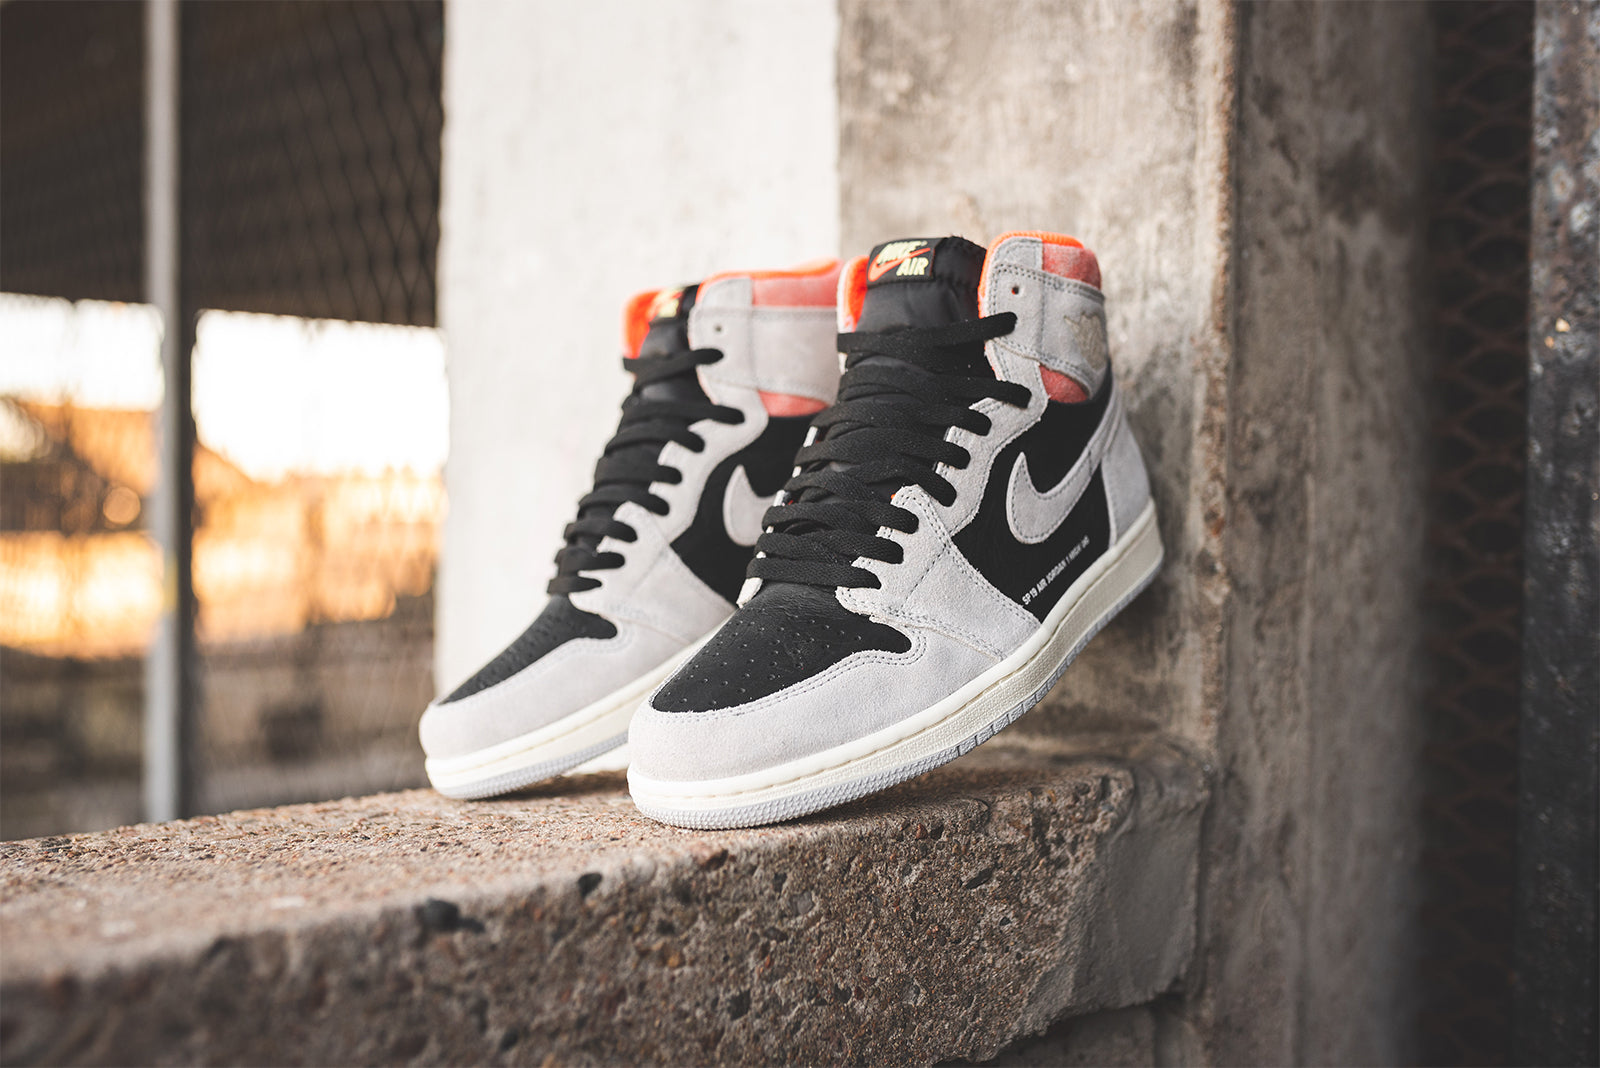 56e8e58bd5f Not that it needs much of an introduction, but here it is the Air Jordan 1  Retro High OG. A true footwear icon, and loved by all the 1 returns in a ...